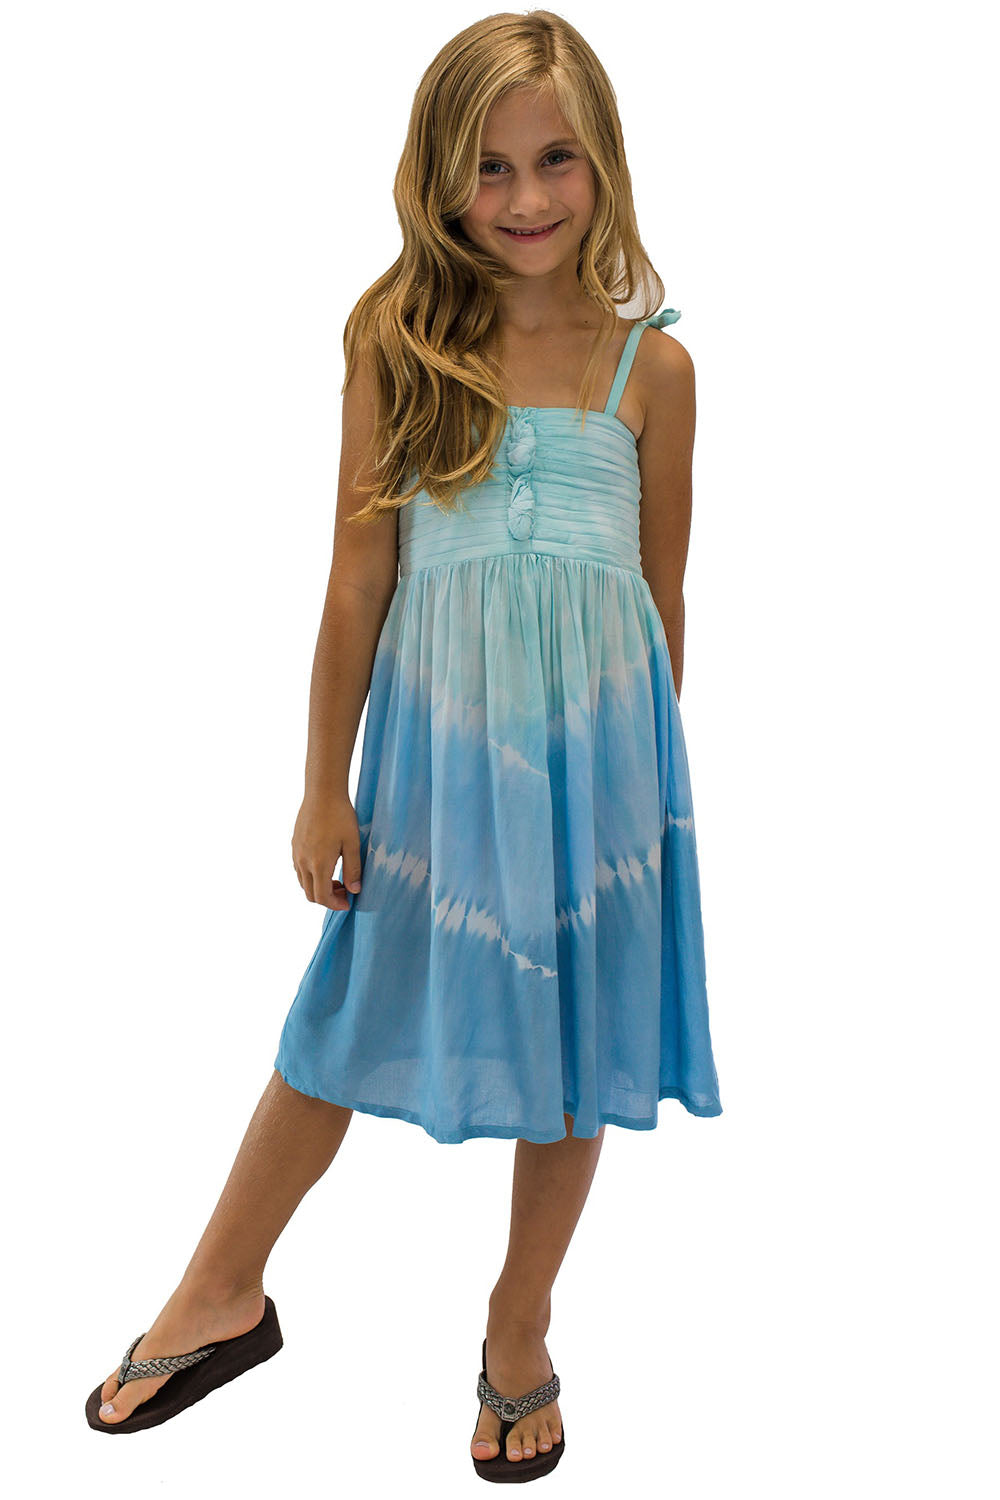 Girls Lani Dress in Abstract Blue